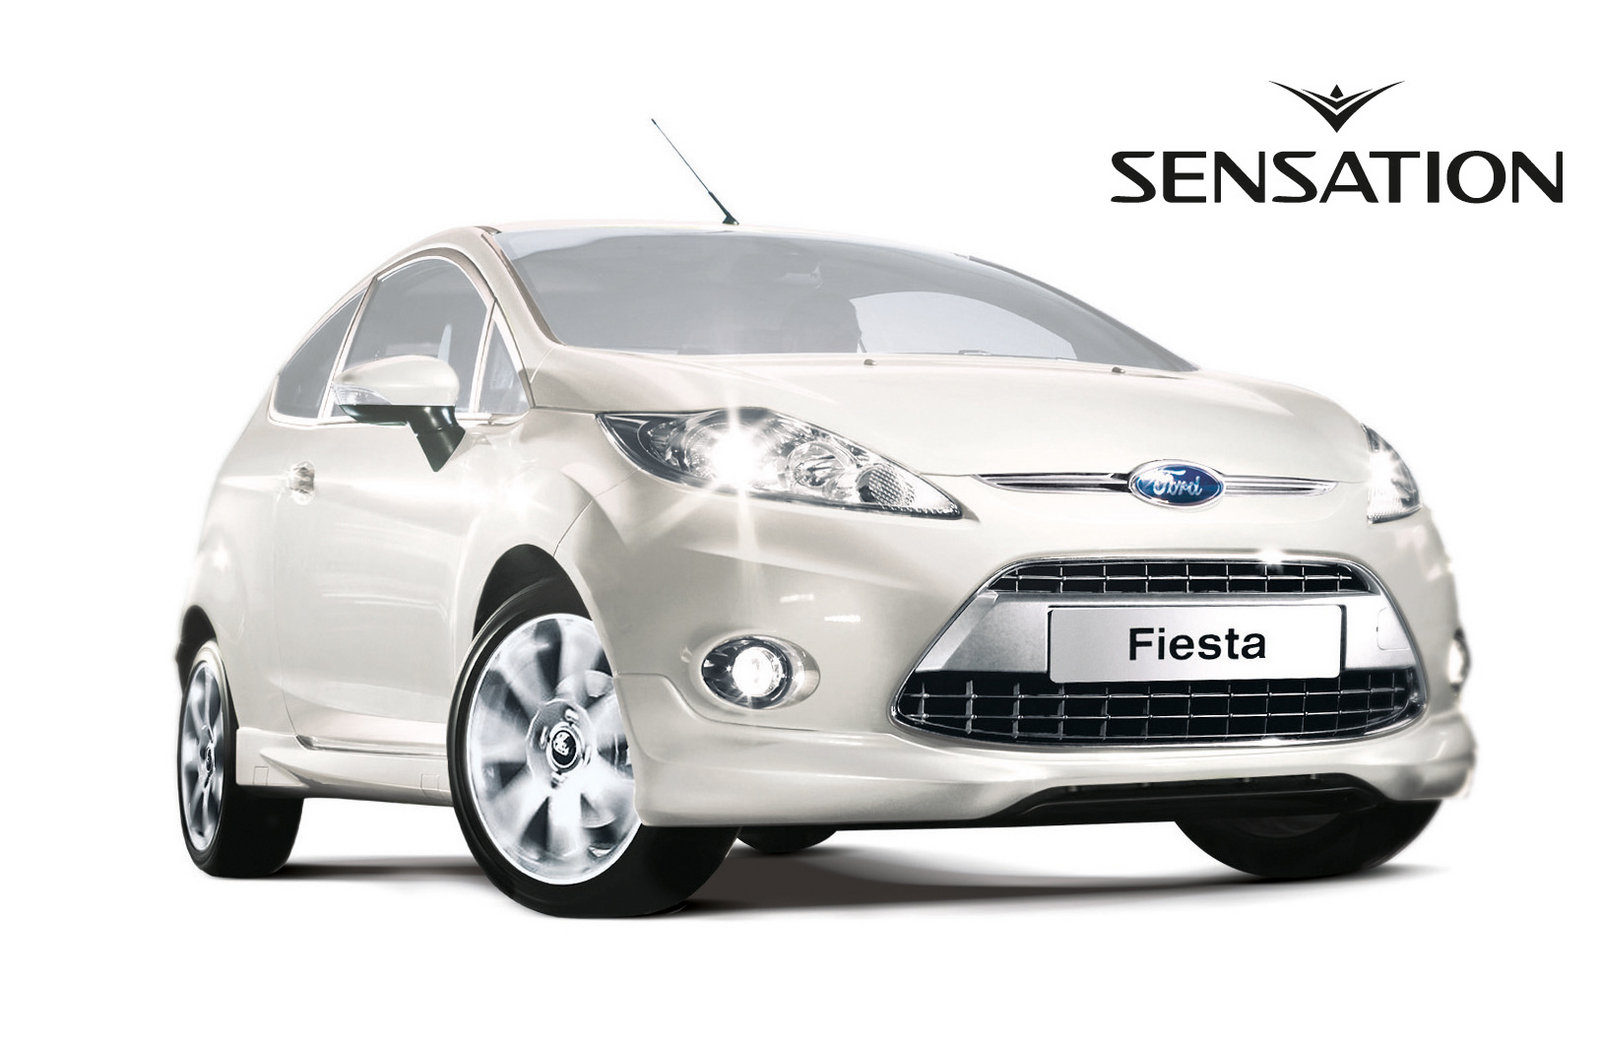 2010 ford fiesta sensation edition review top speed. Black Bedroom Furniture Sets. Home Design Ideas